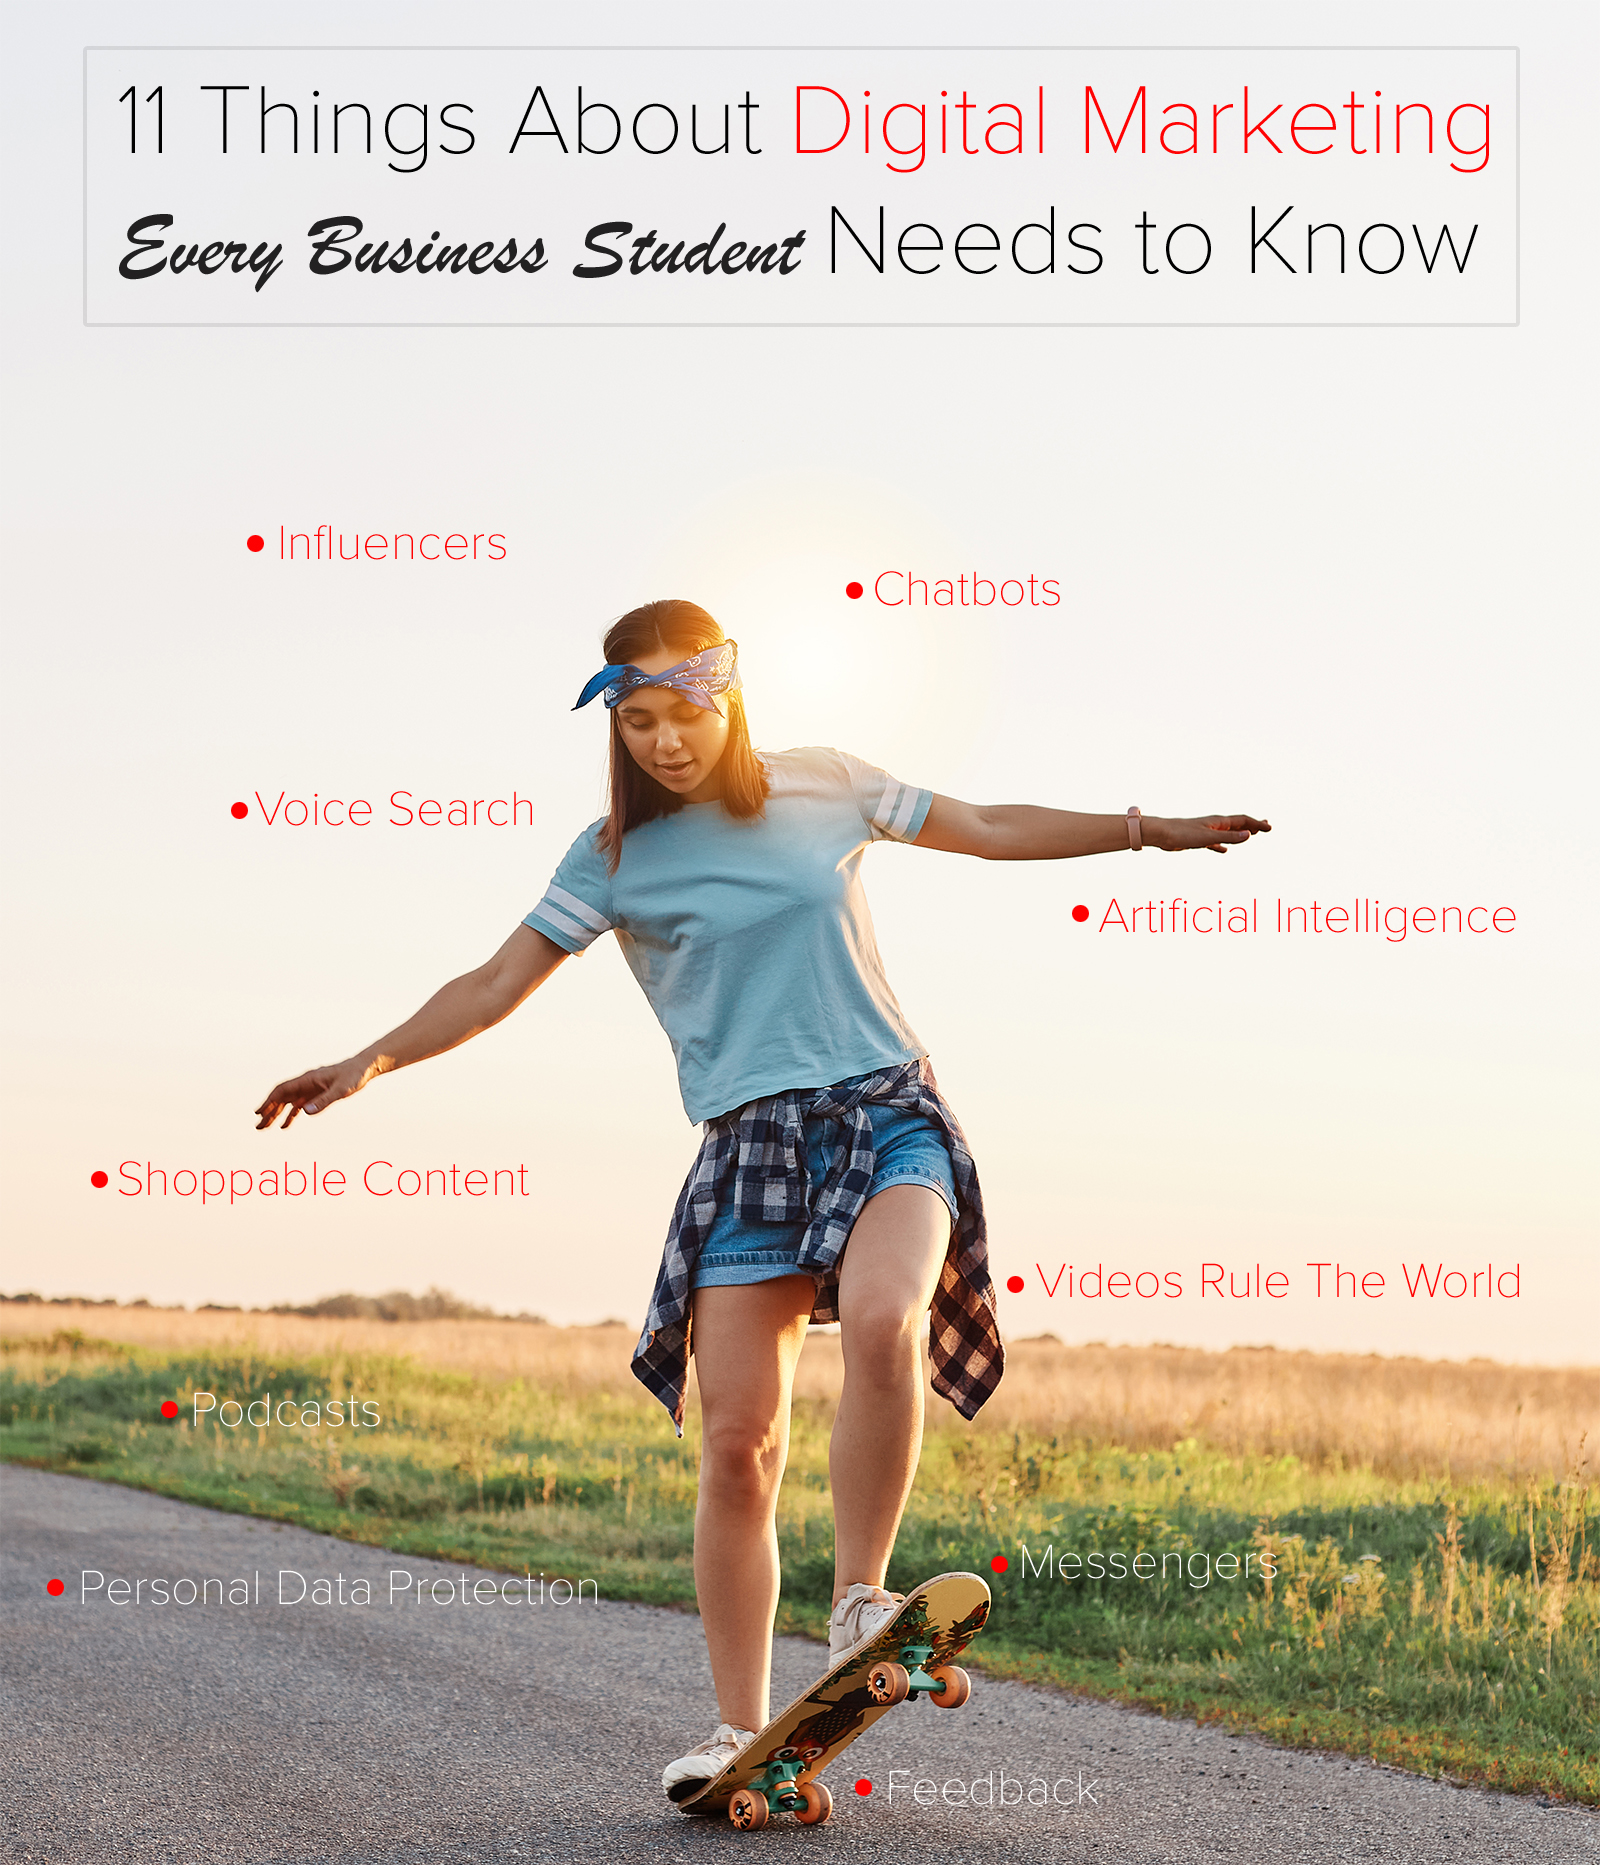 11 Things About Digital Marketing Every Business Student Needs to Know